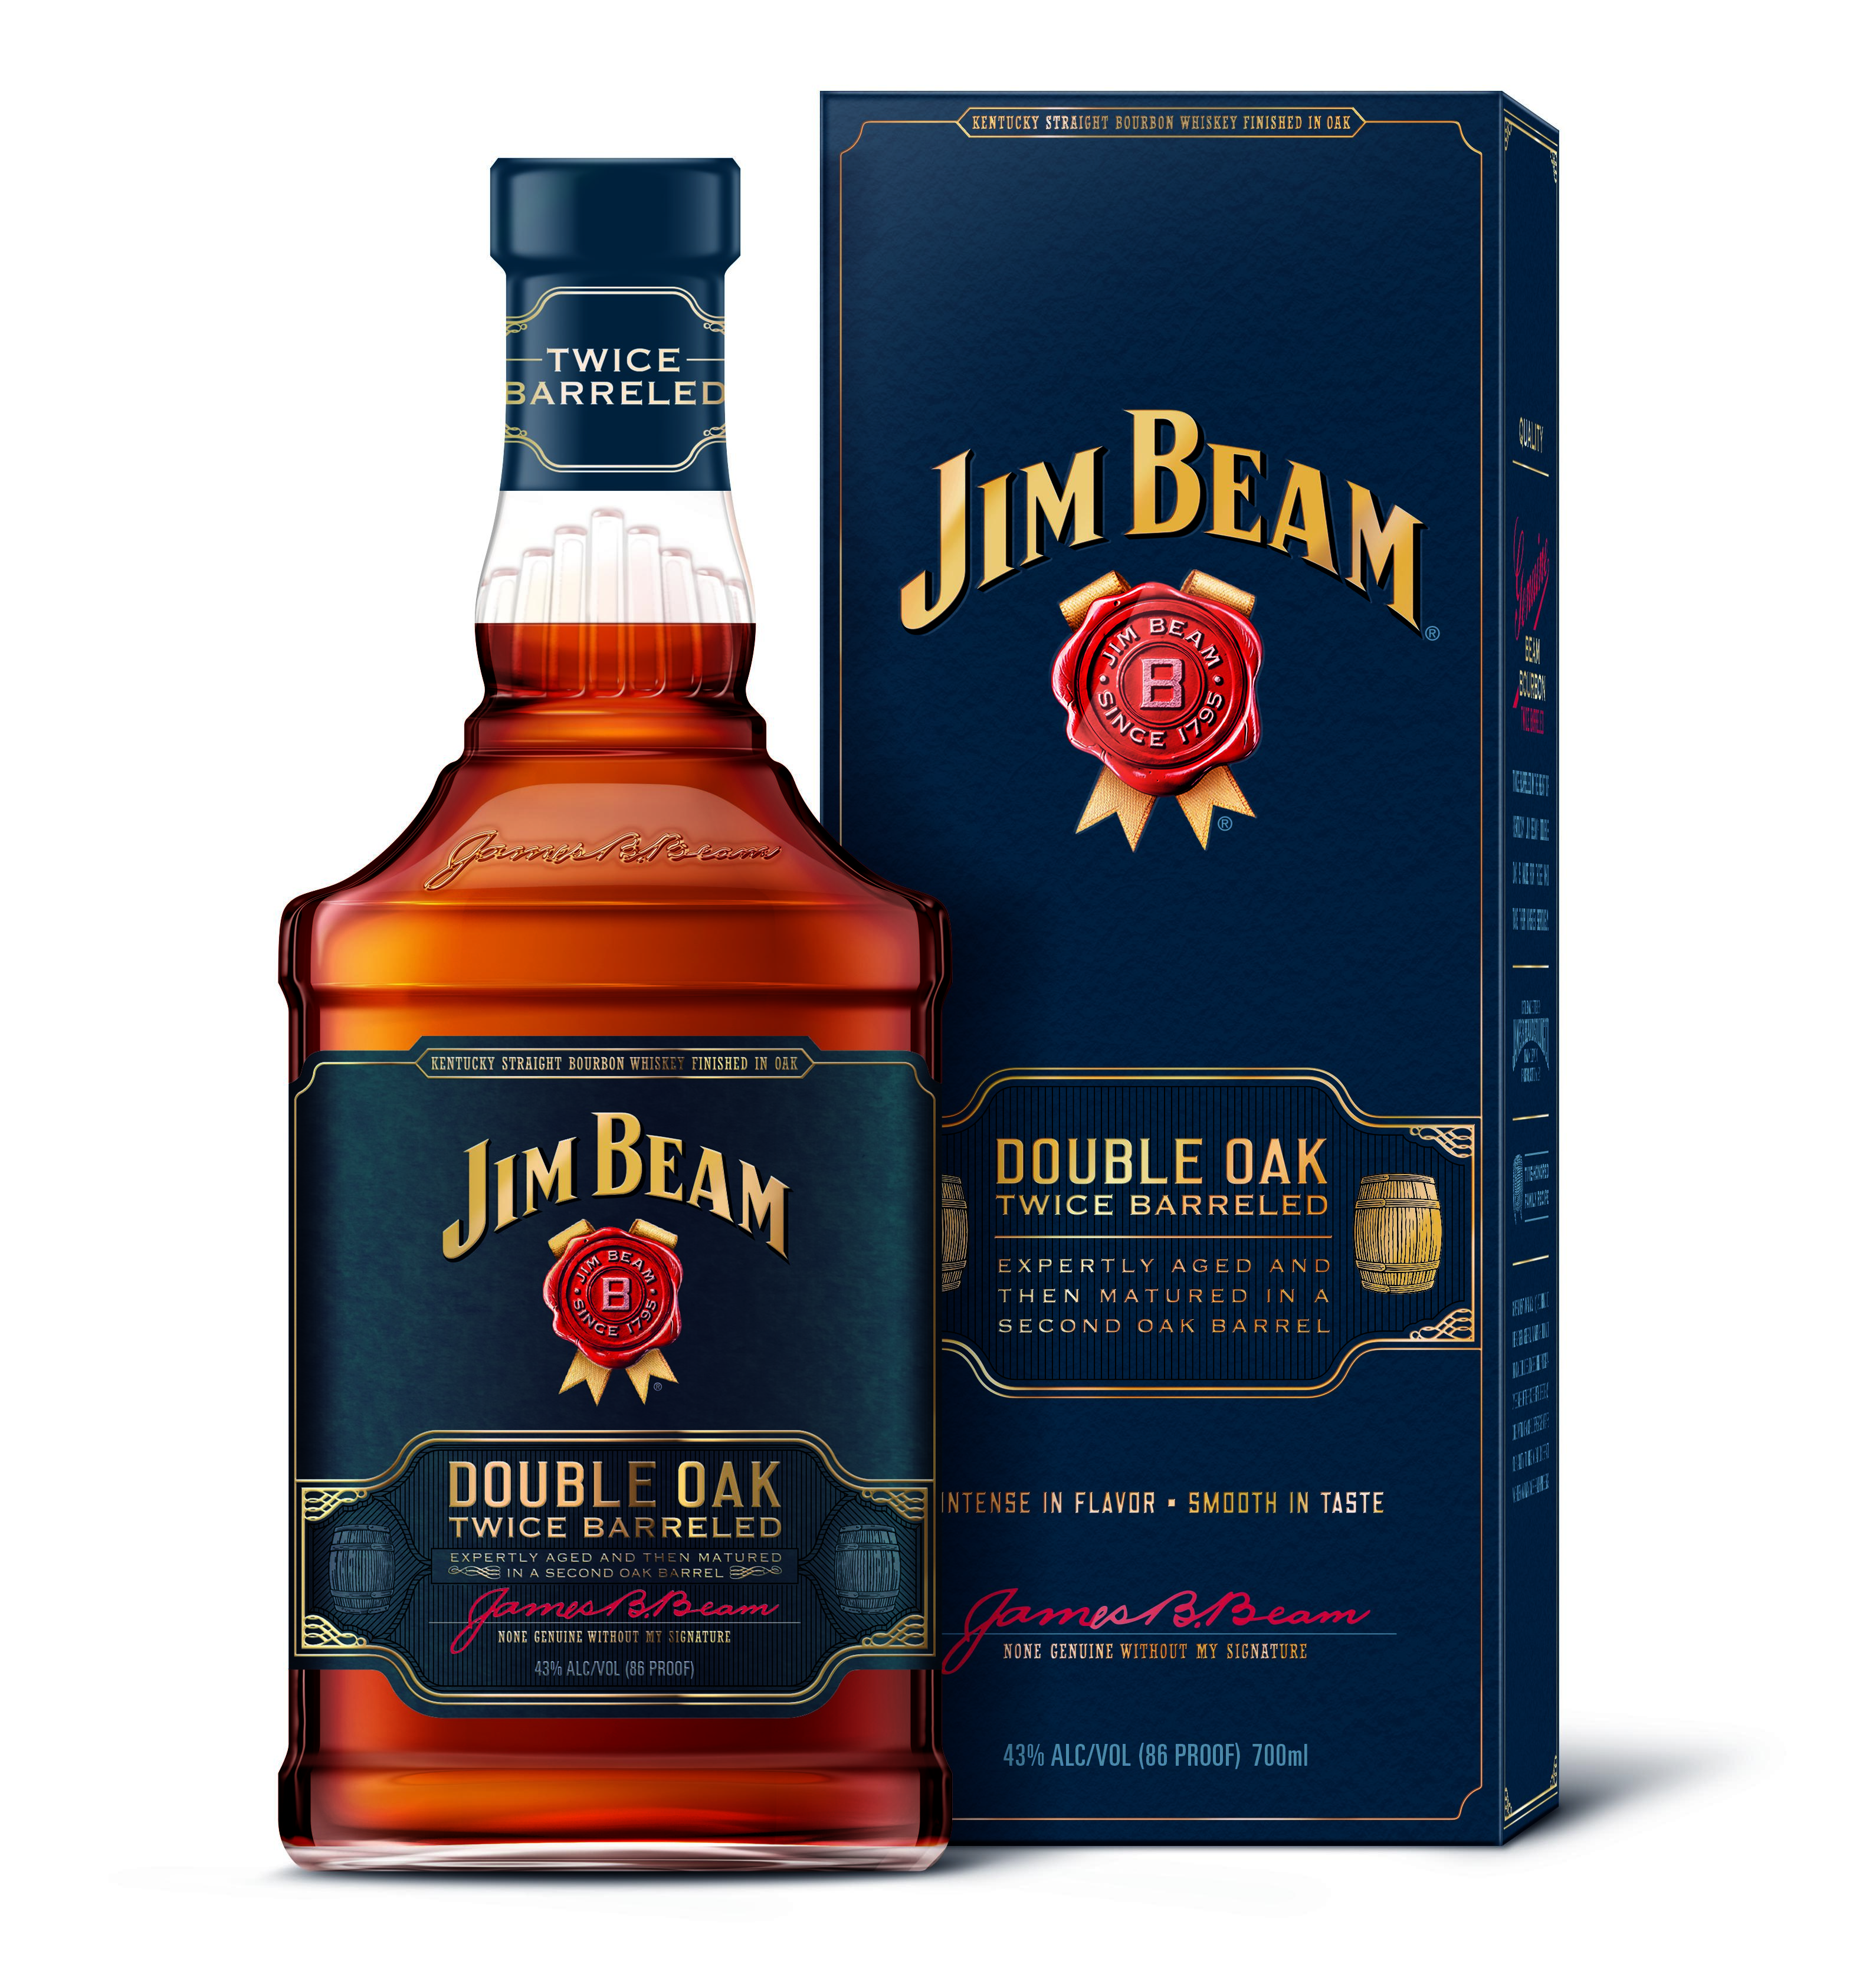 Bottle and box of Jim Beam Double Oak Bourbon